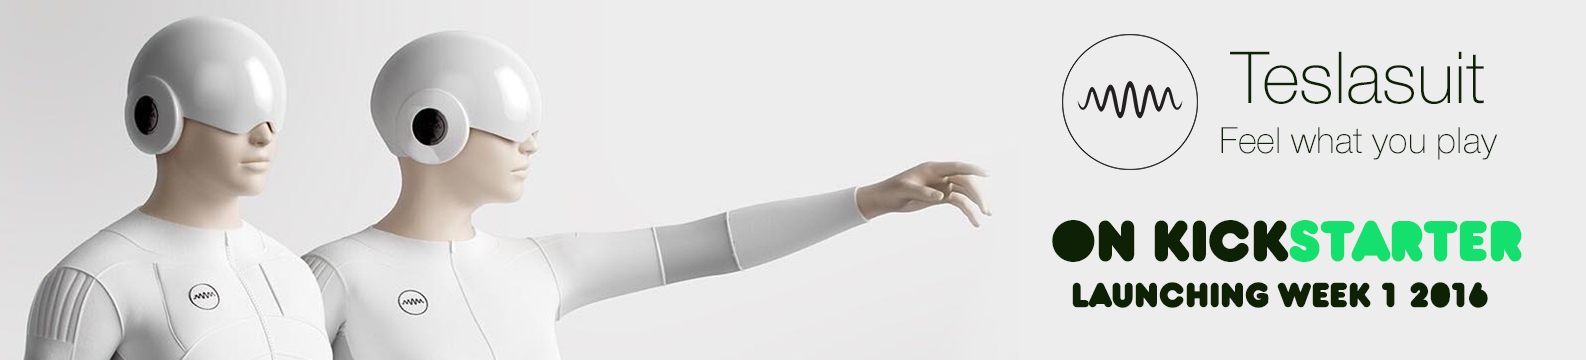 Teslasuit - The worlds 1st full body haptics suit that lets you feel VR